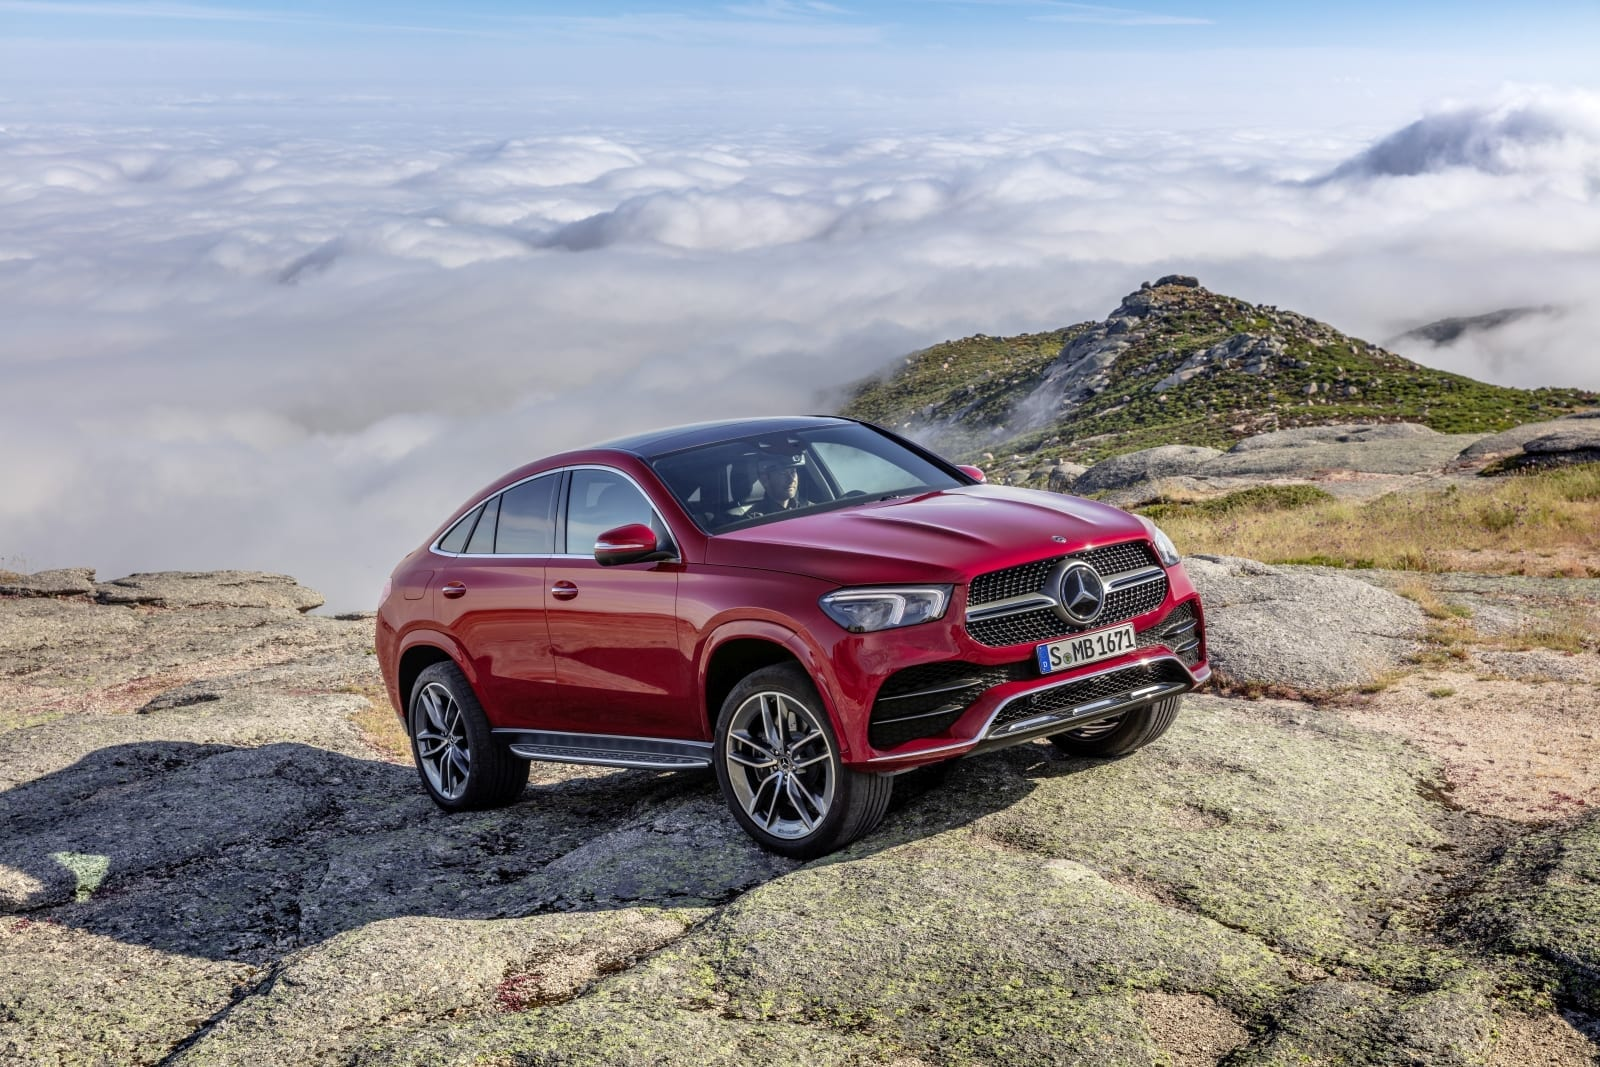 Mercedes-Benz GLE Coupé 2019Mercedes-Benz GLE Coupé 2019